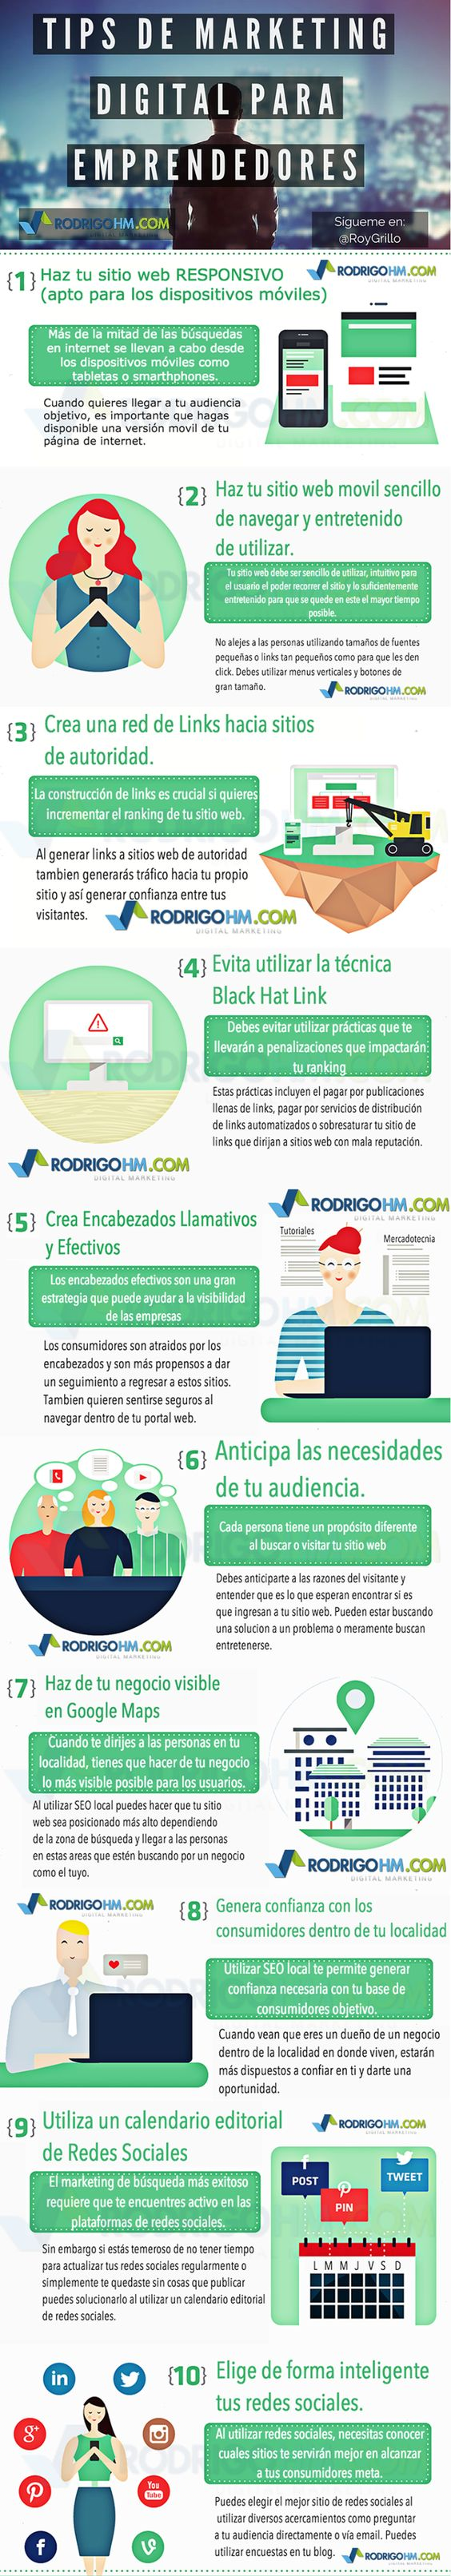 Tips de marketing digital para emprendedores